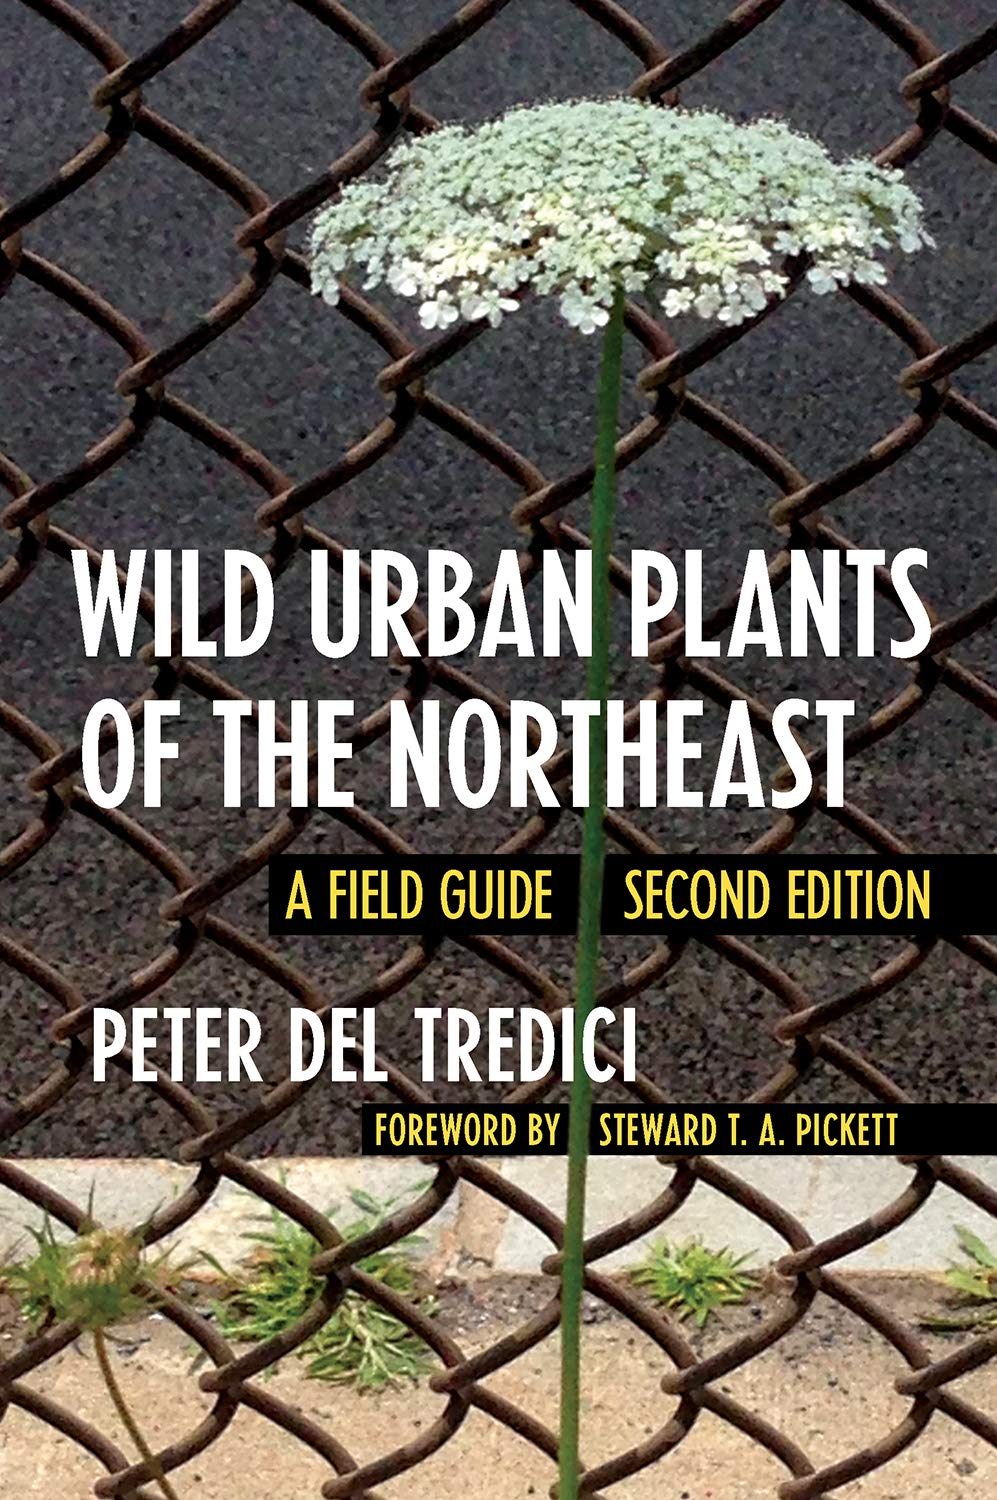 Wild Urban Plants of the Northeast -Cover Art - link to Jumpstart item record